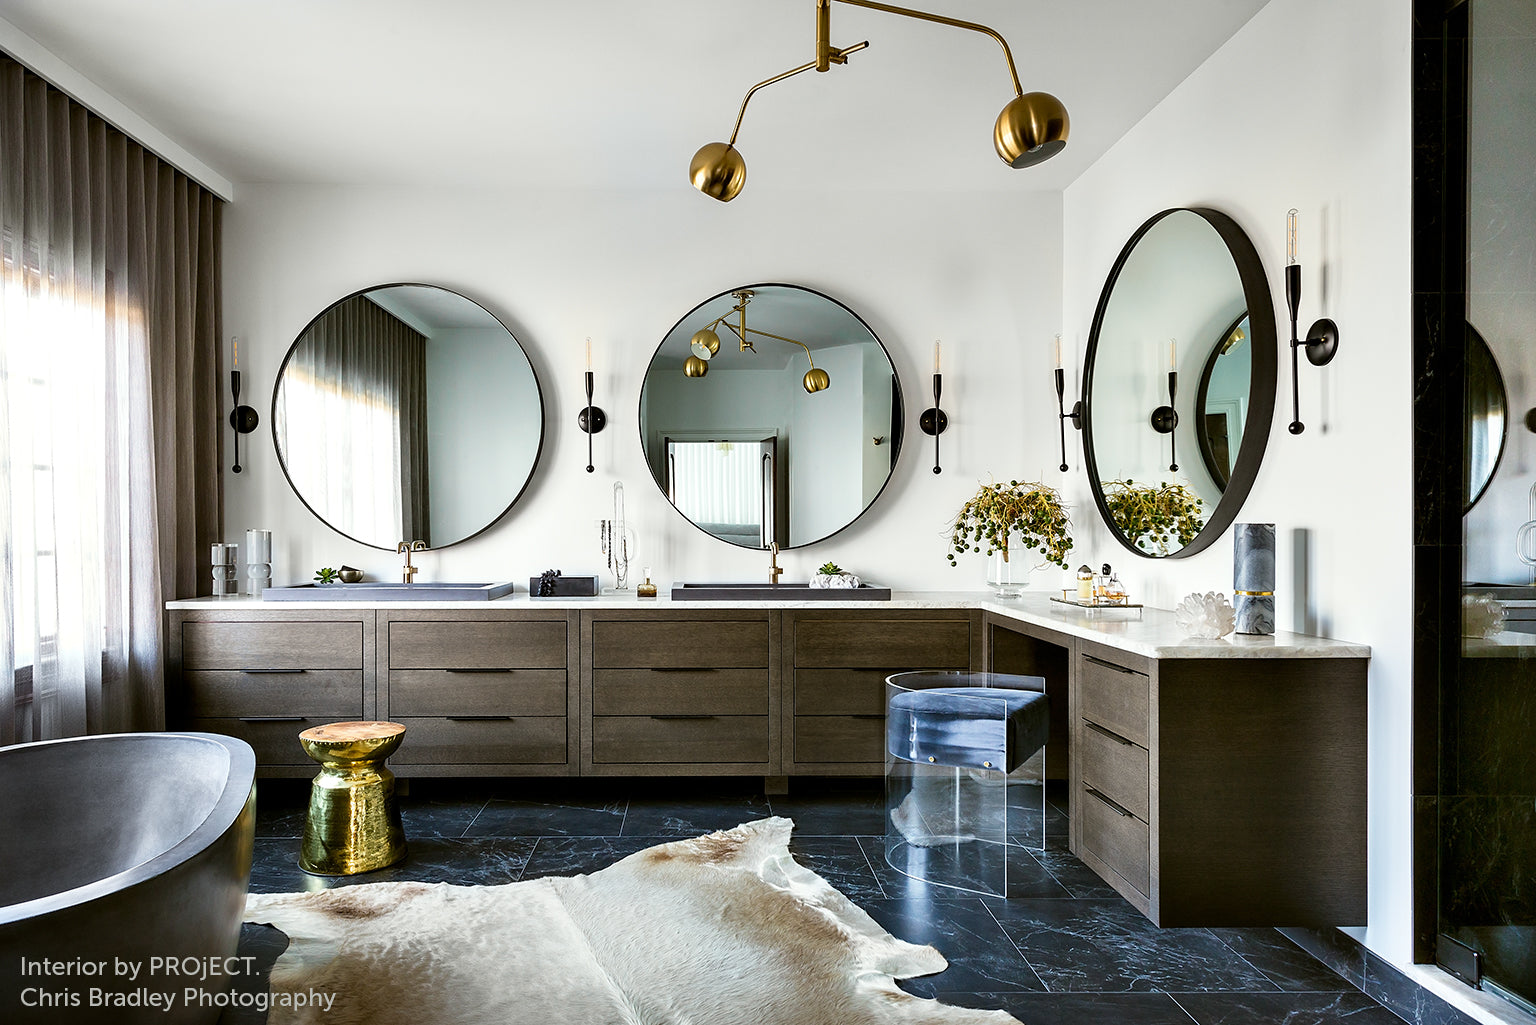 Master bathroom with Sorenthia Black Sconces interior by PROjECT. photo by Chris Bradley